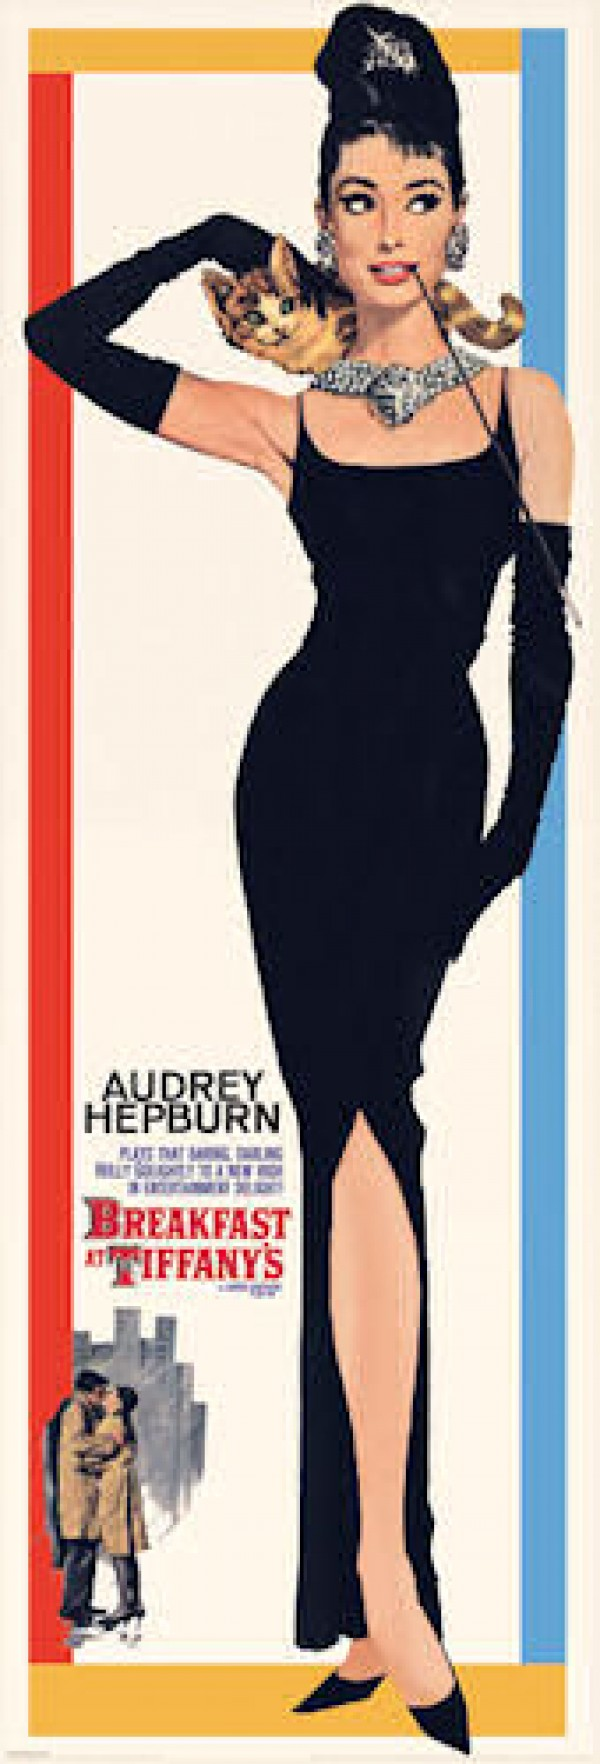 Audrey Hepburn Breakfast At Tiffanys Door Poster